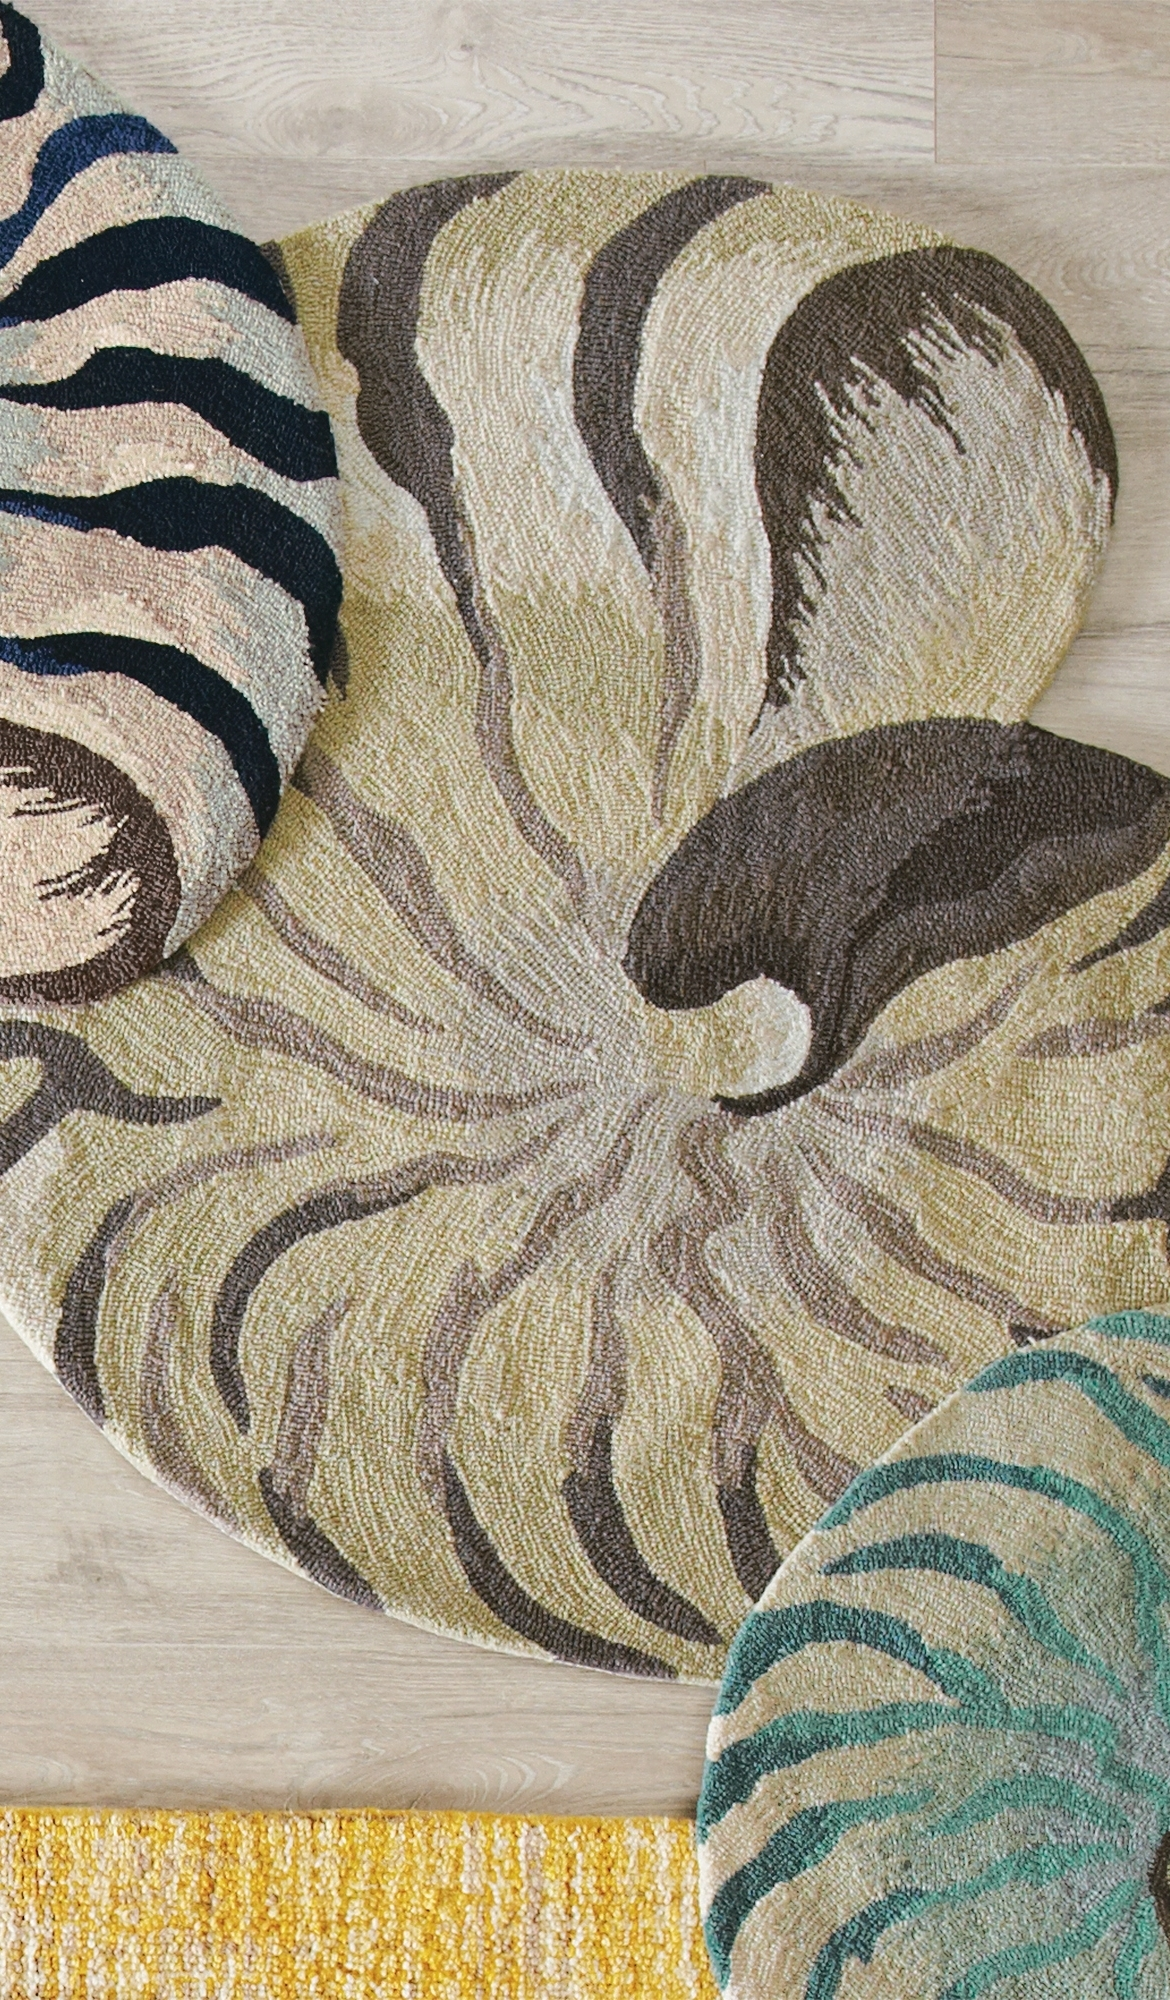 Add A Splash Of Seaside Style With Our Spiraling Shell Shaped Rug Intended For Seaside Rugs (View 10 of 15)